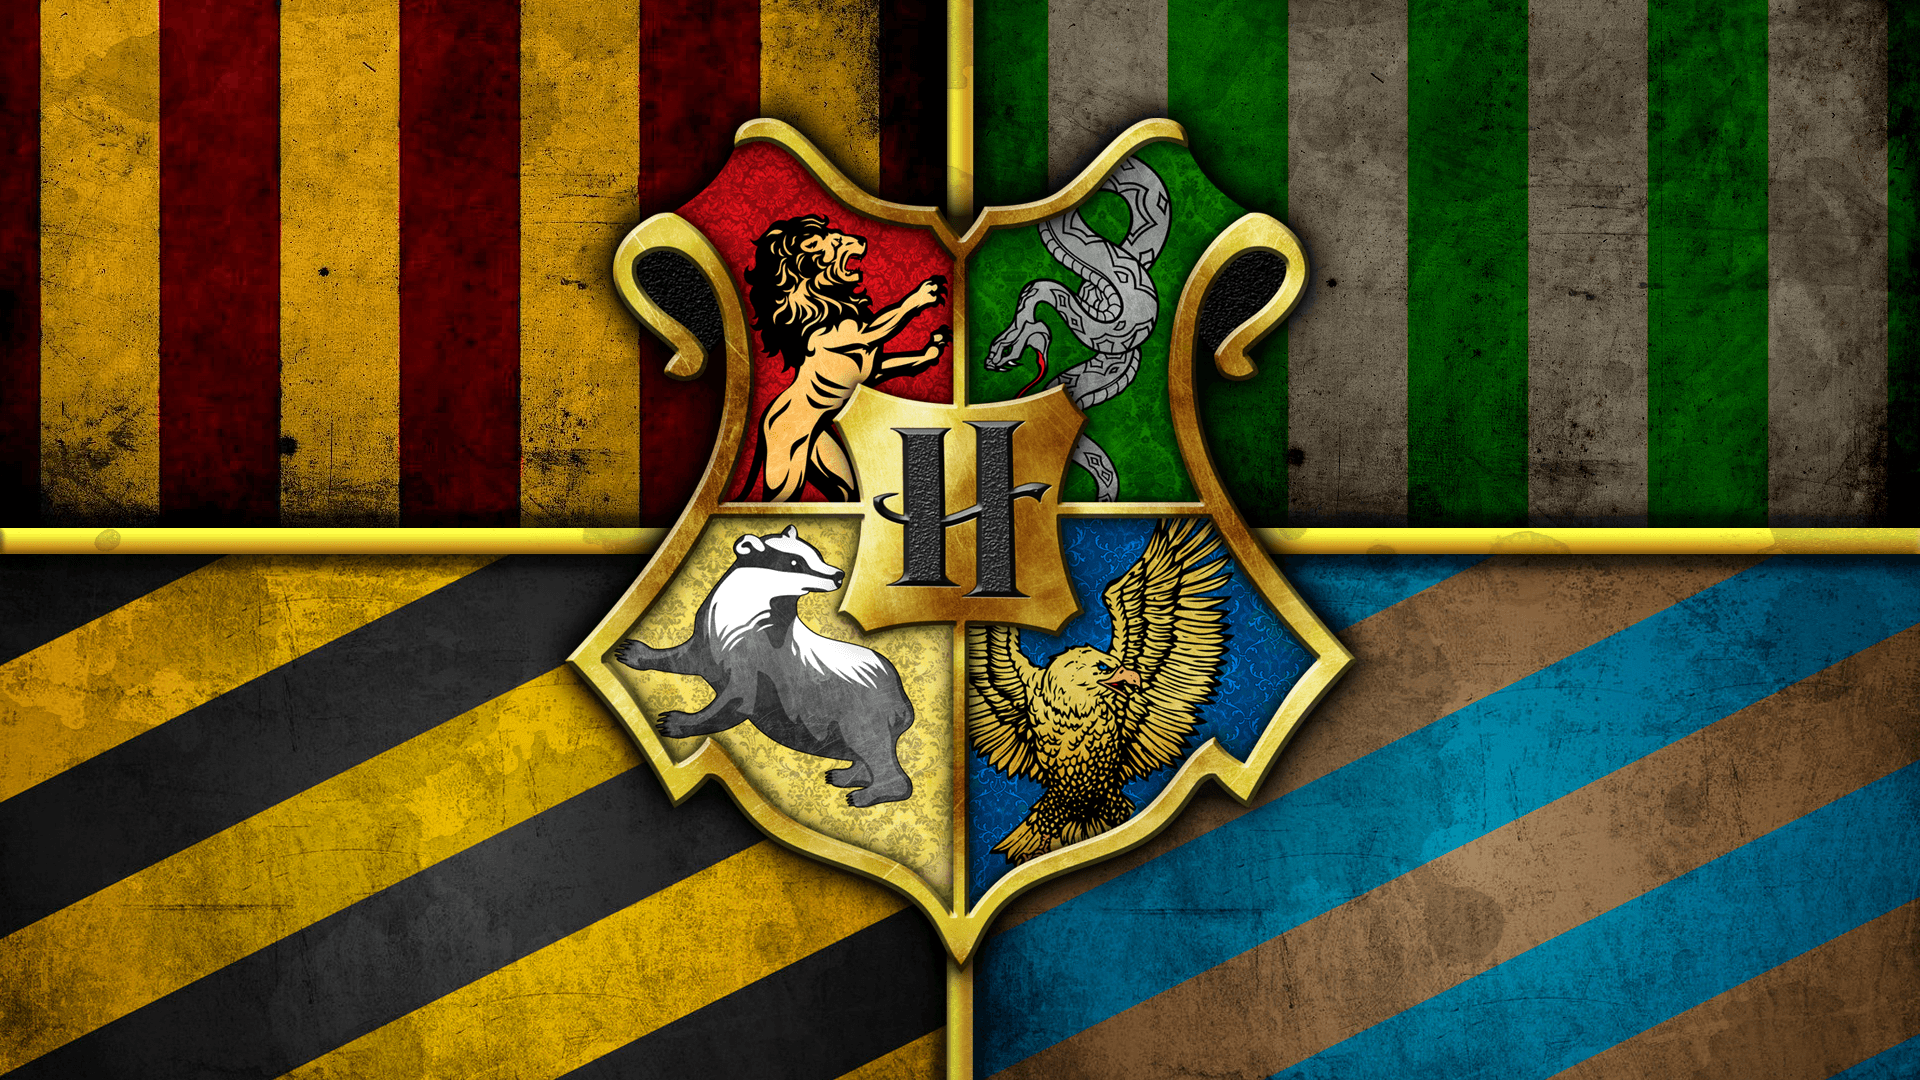 1920x1080 The Houses of Hogwarts [1920x1080] : harrypotter